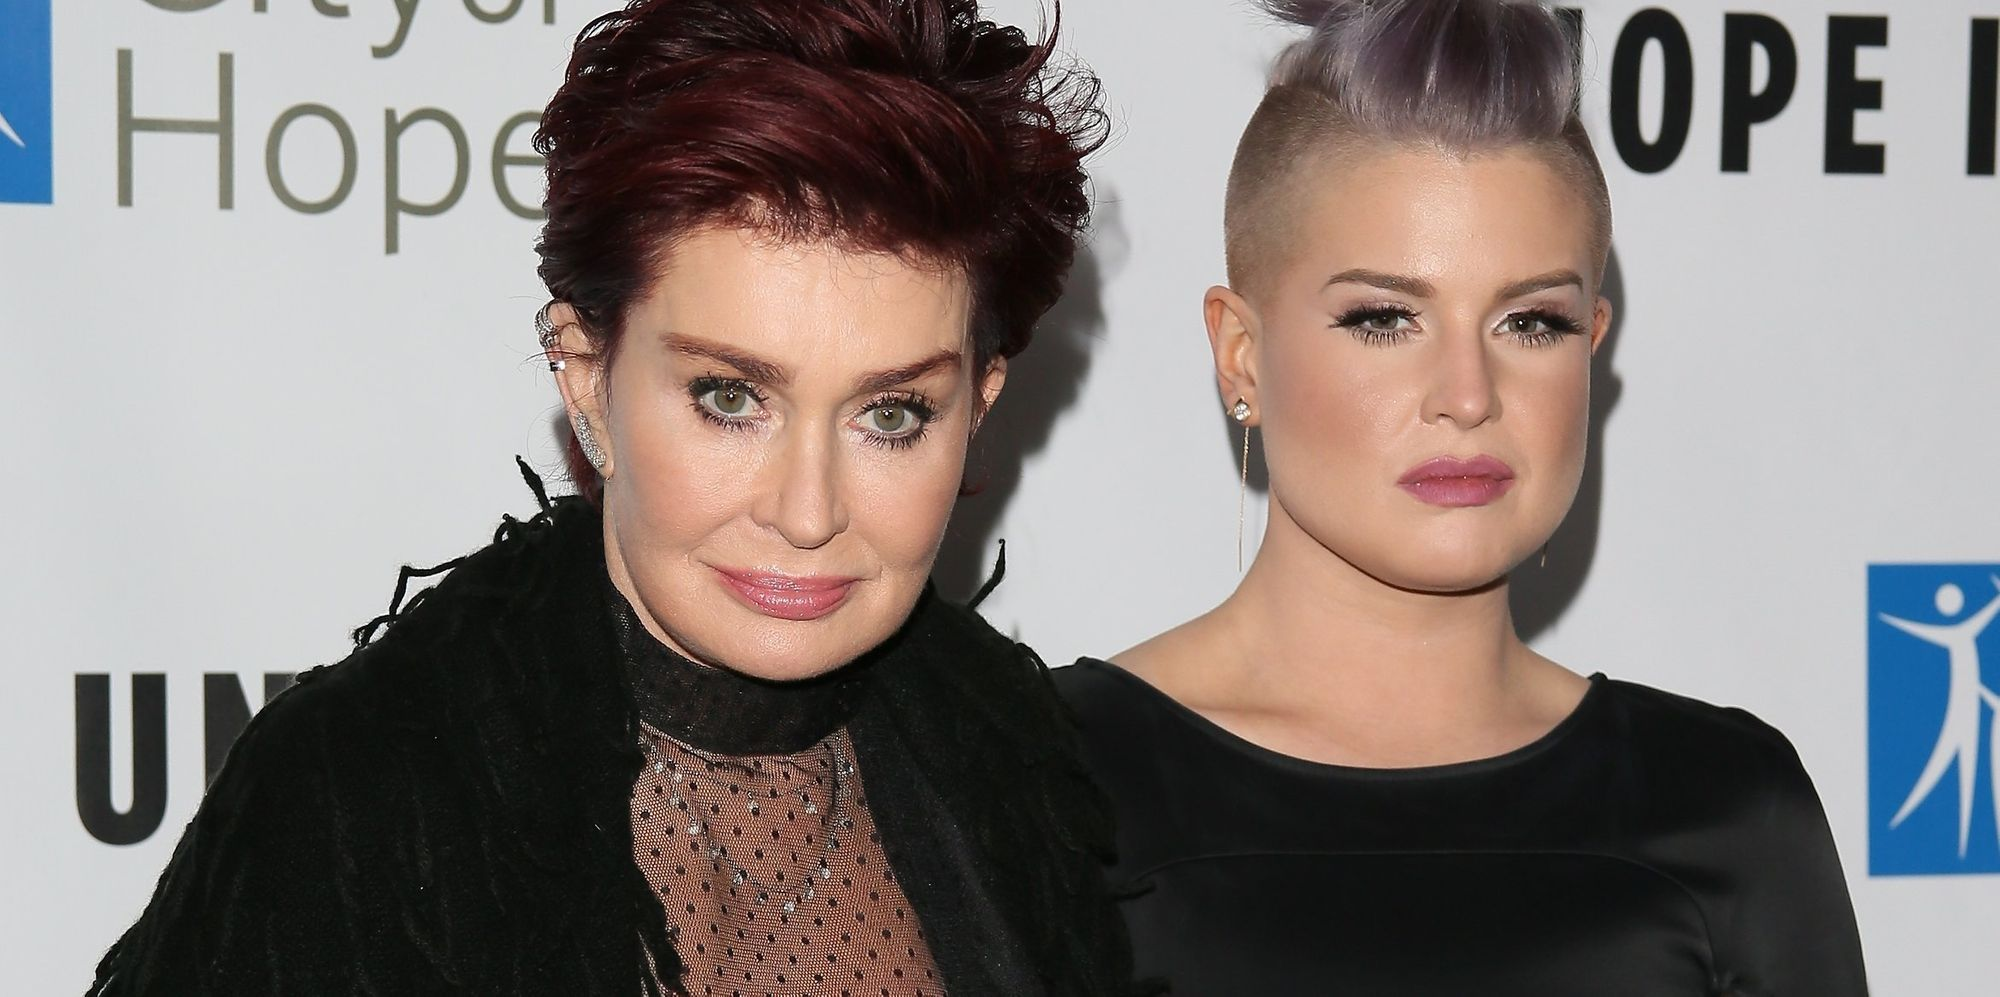 Sharon Osbourne Addresses Kelly's Latest Twitter Outburst: 'You Have To Laugh'